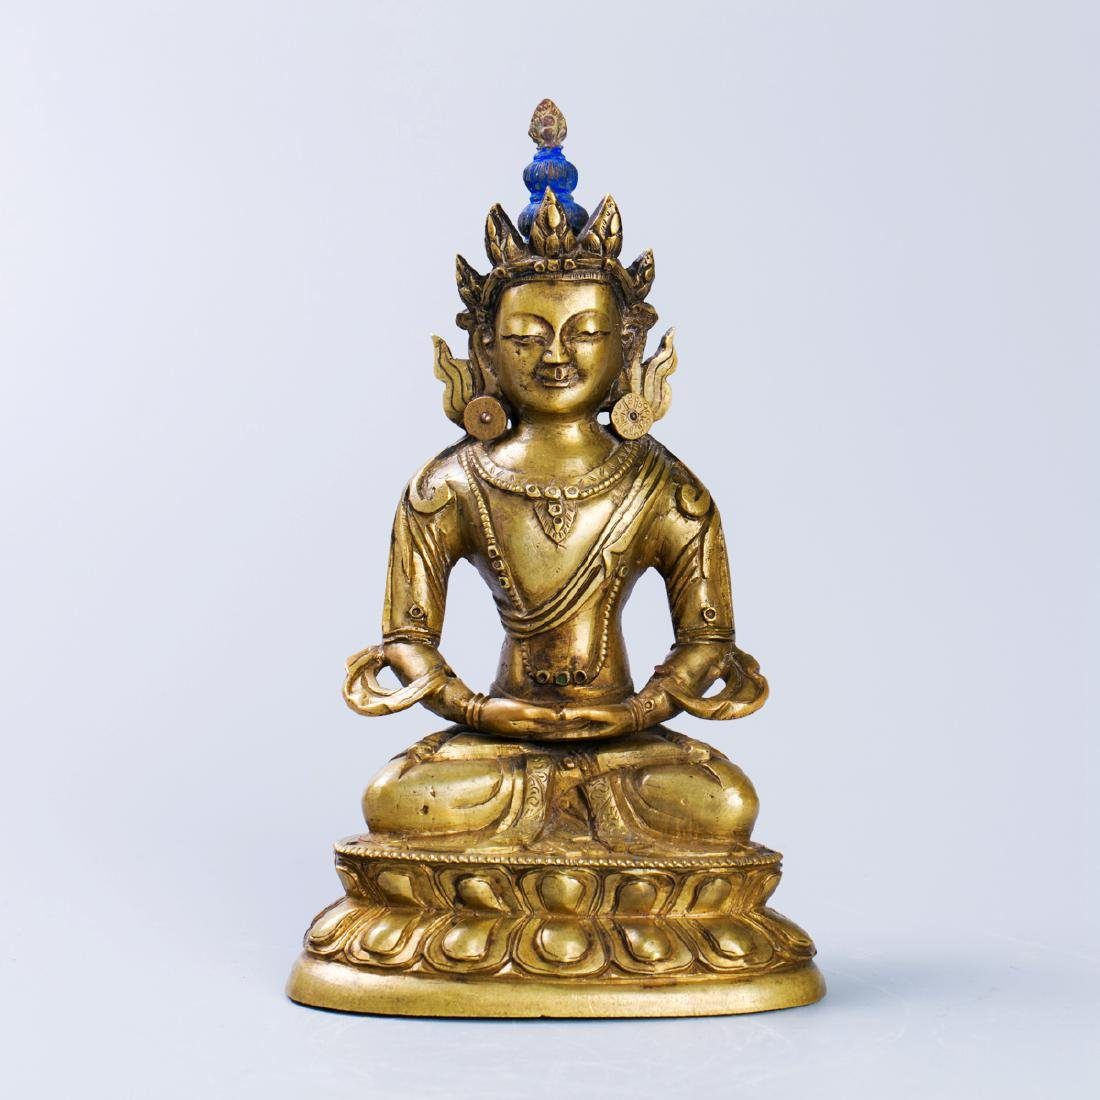 A Chinese Bronze Buddha Figure